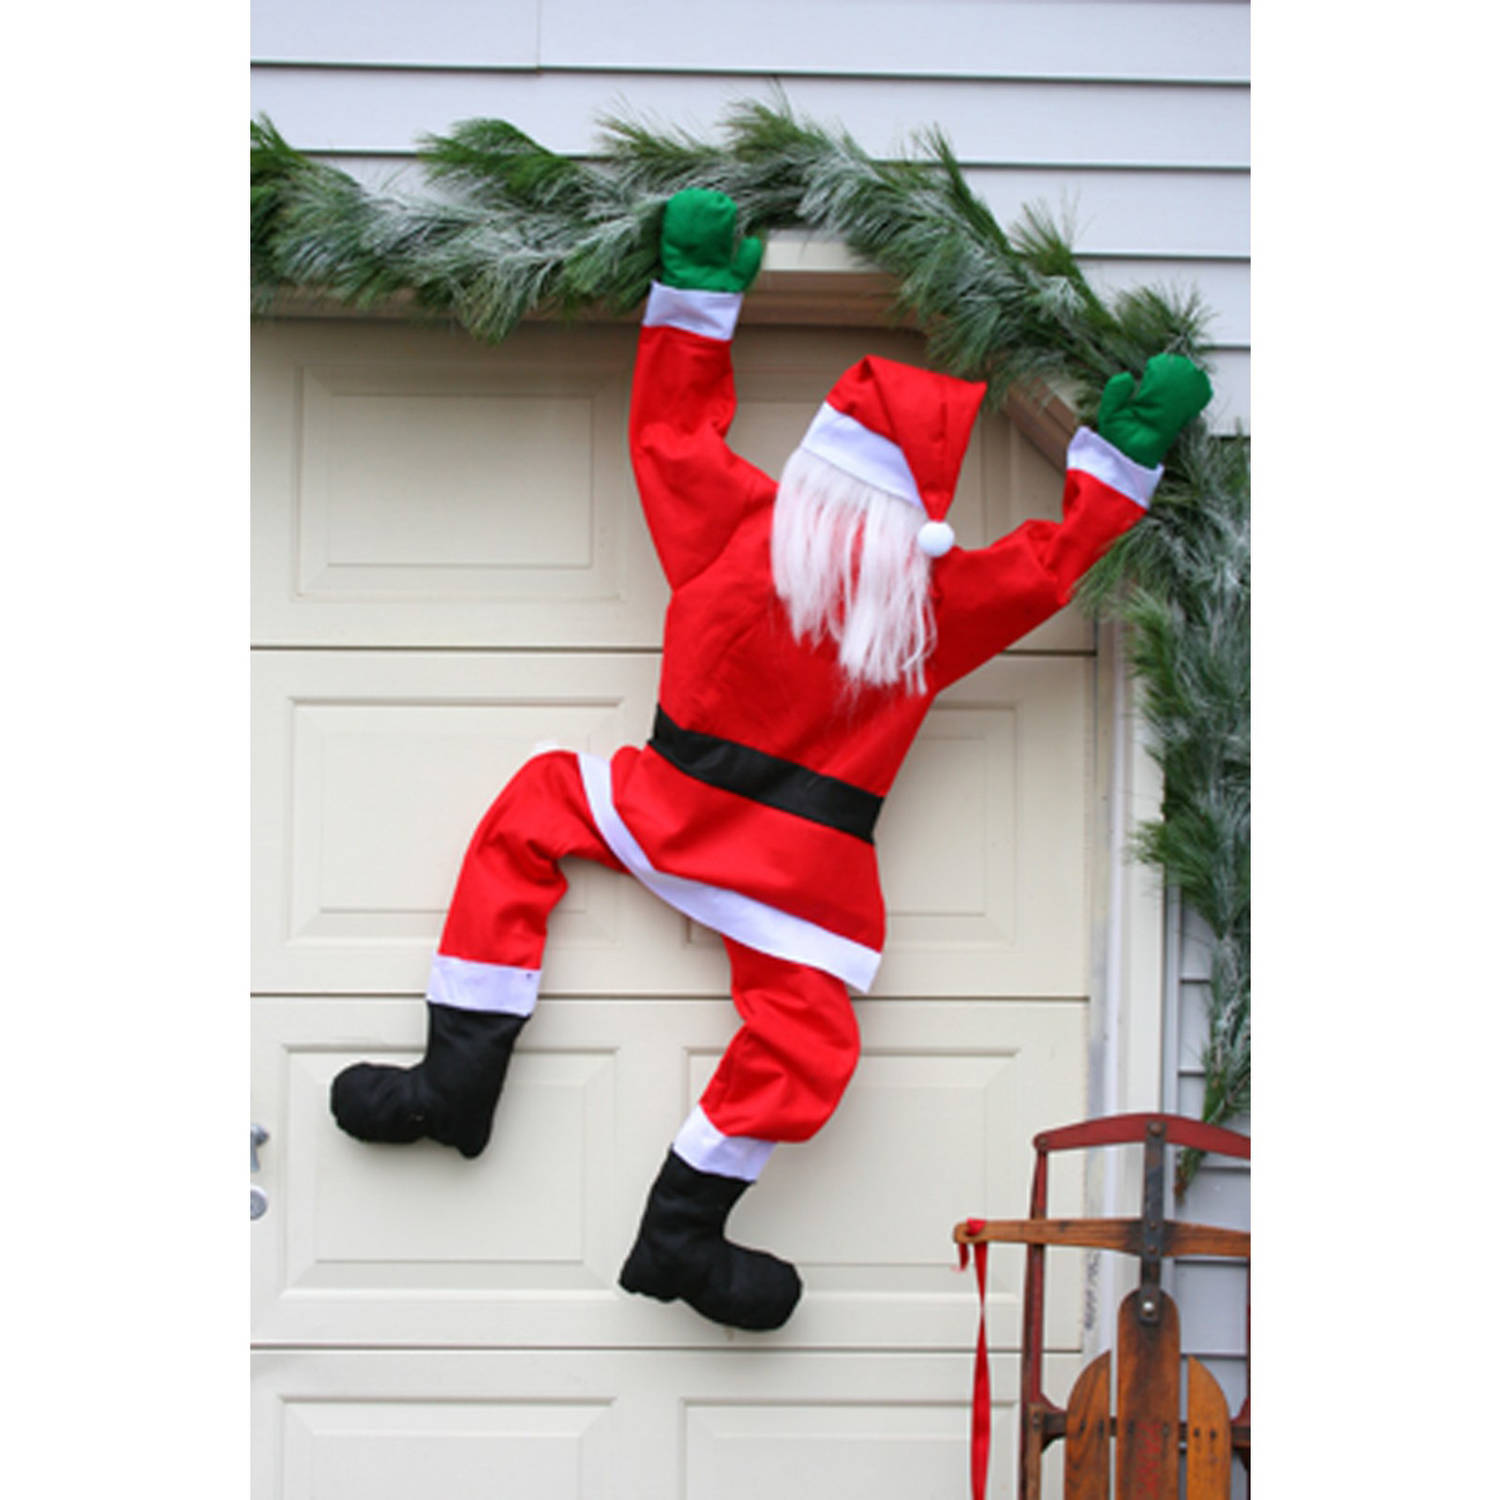 60 climbing santa hanging from gutter house chimney for Asas interhome decoration